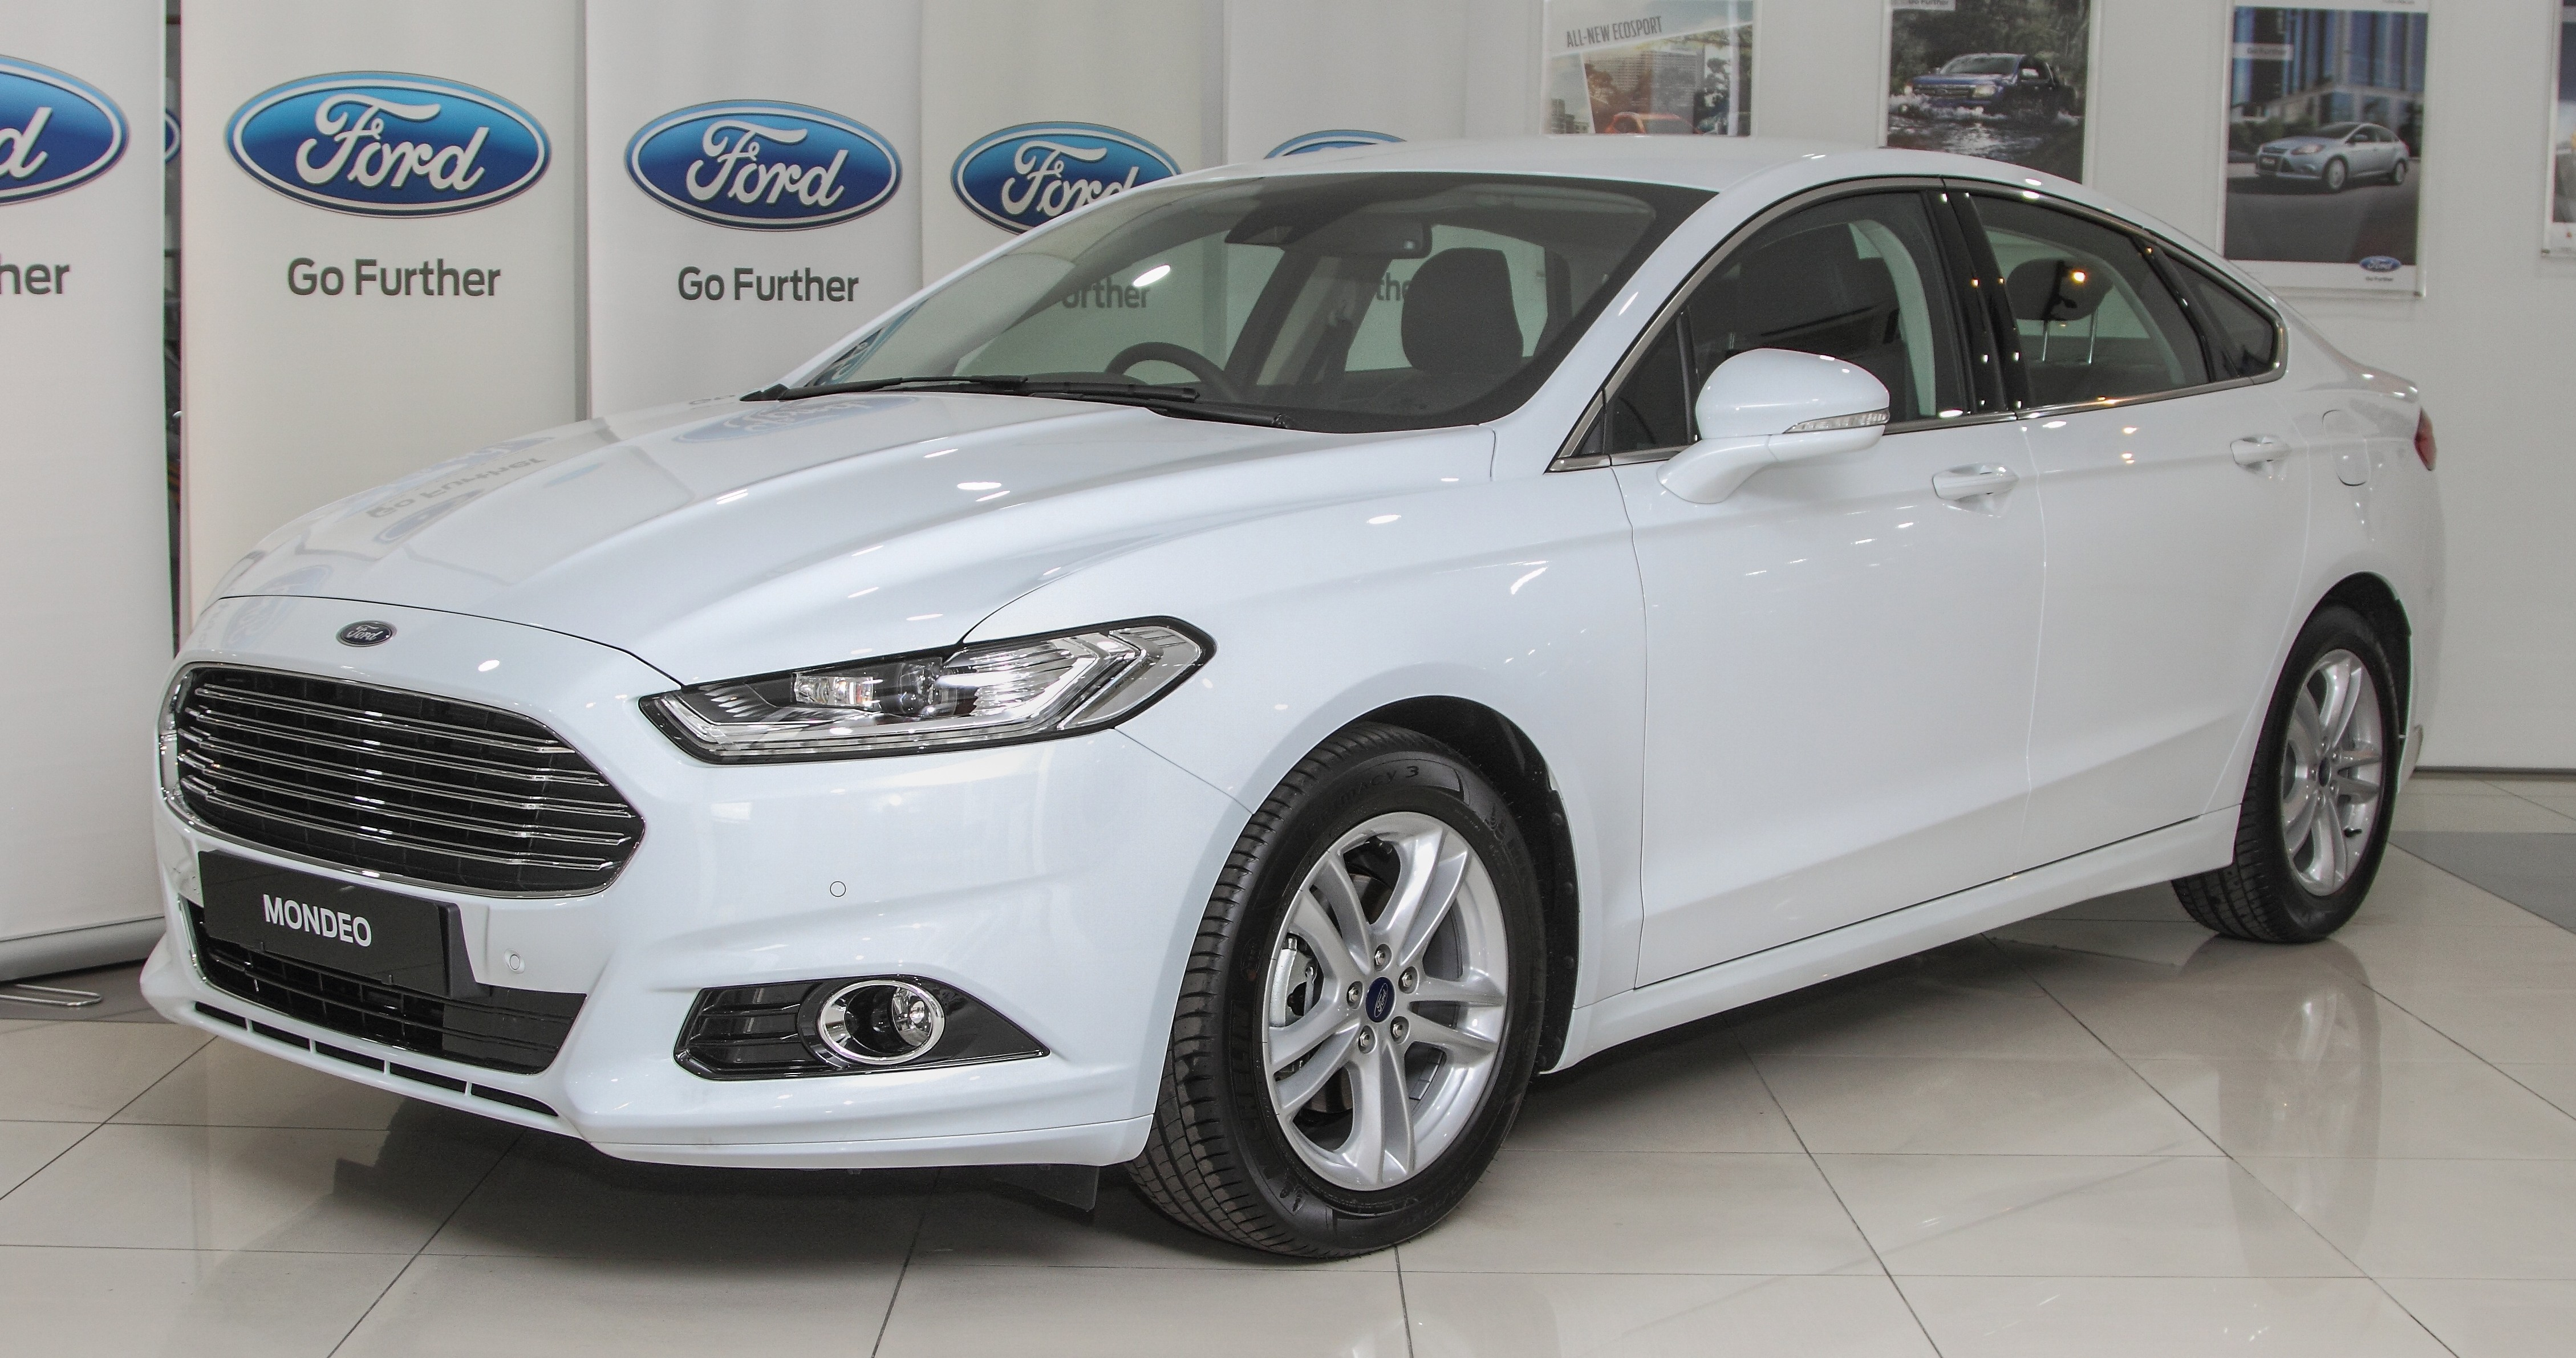 Ford Mondeo 2015 White >> 2015 Ford Mondeo Launched In Malaysia Rm198k Paul Tan Image 336957